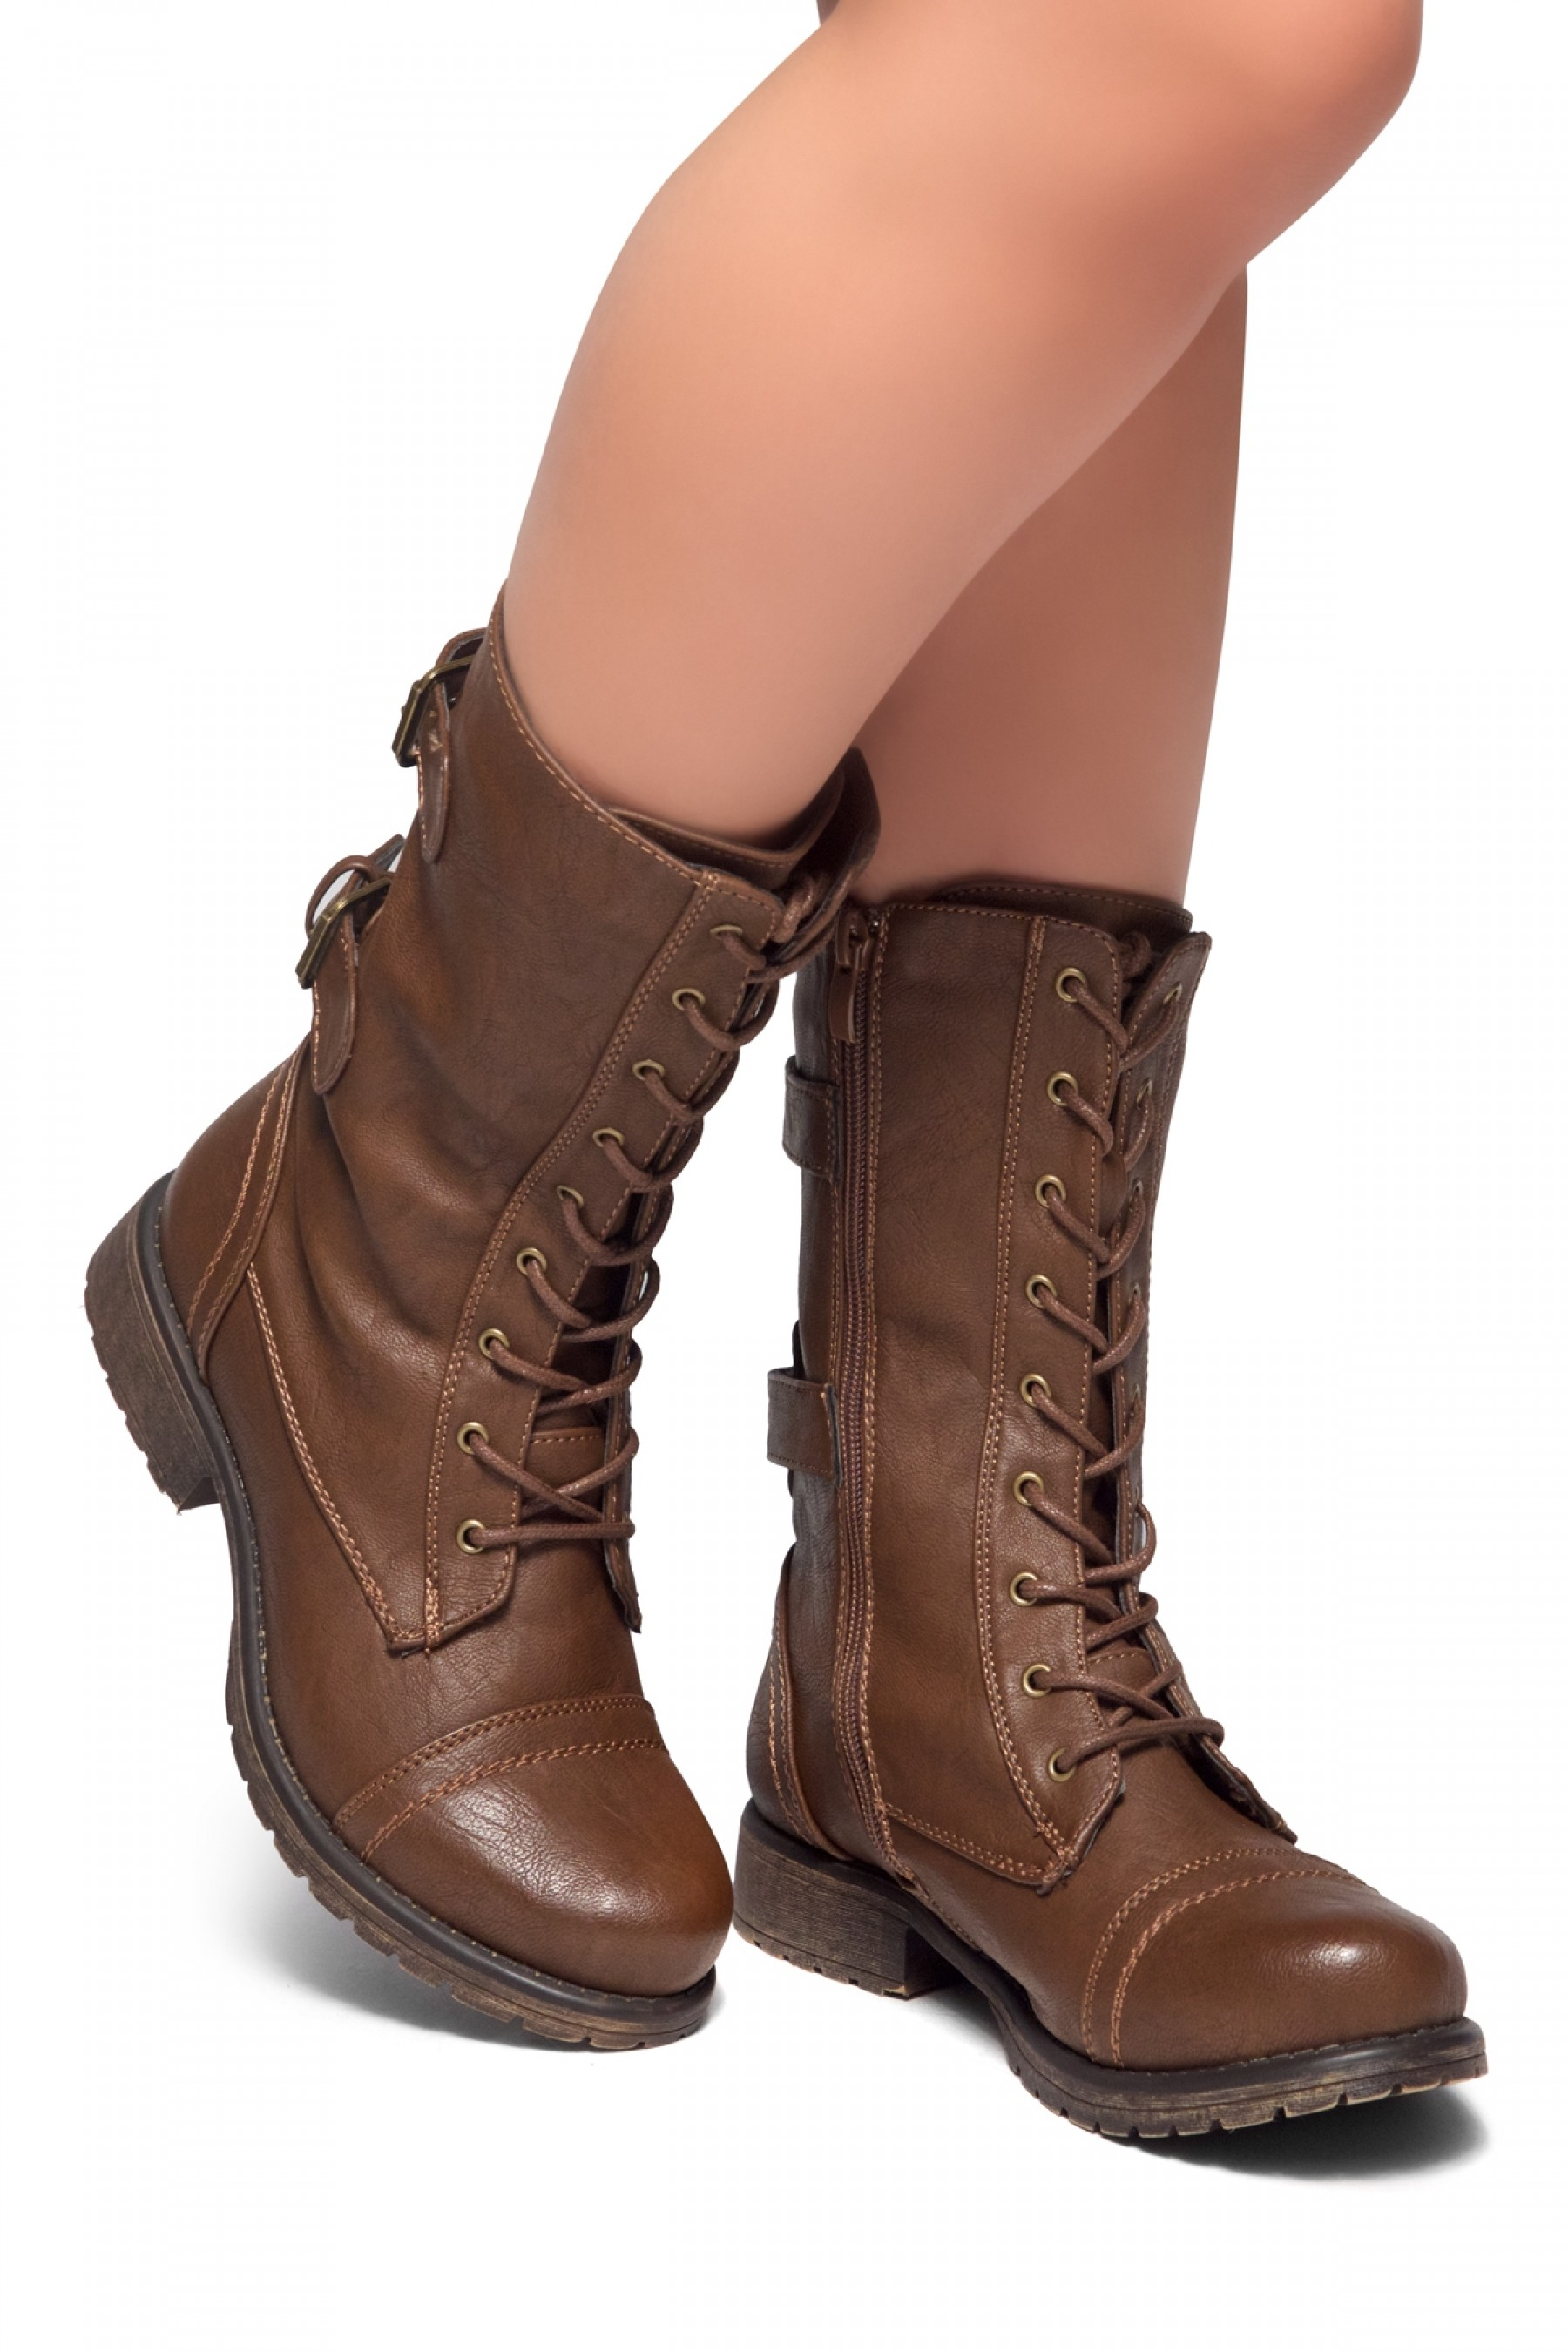 Women\u0027s Brown Florence 2 Military Lace up, Double Buckled, Middle Calf  Combat Boots